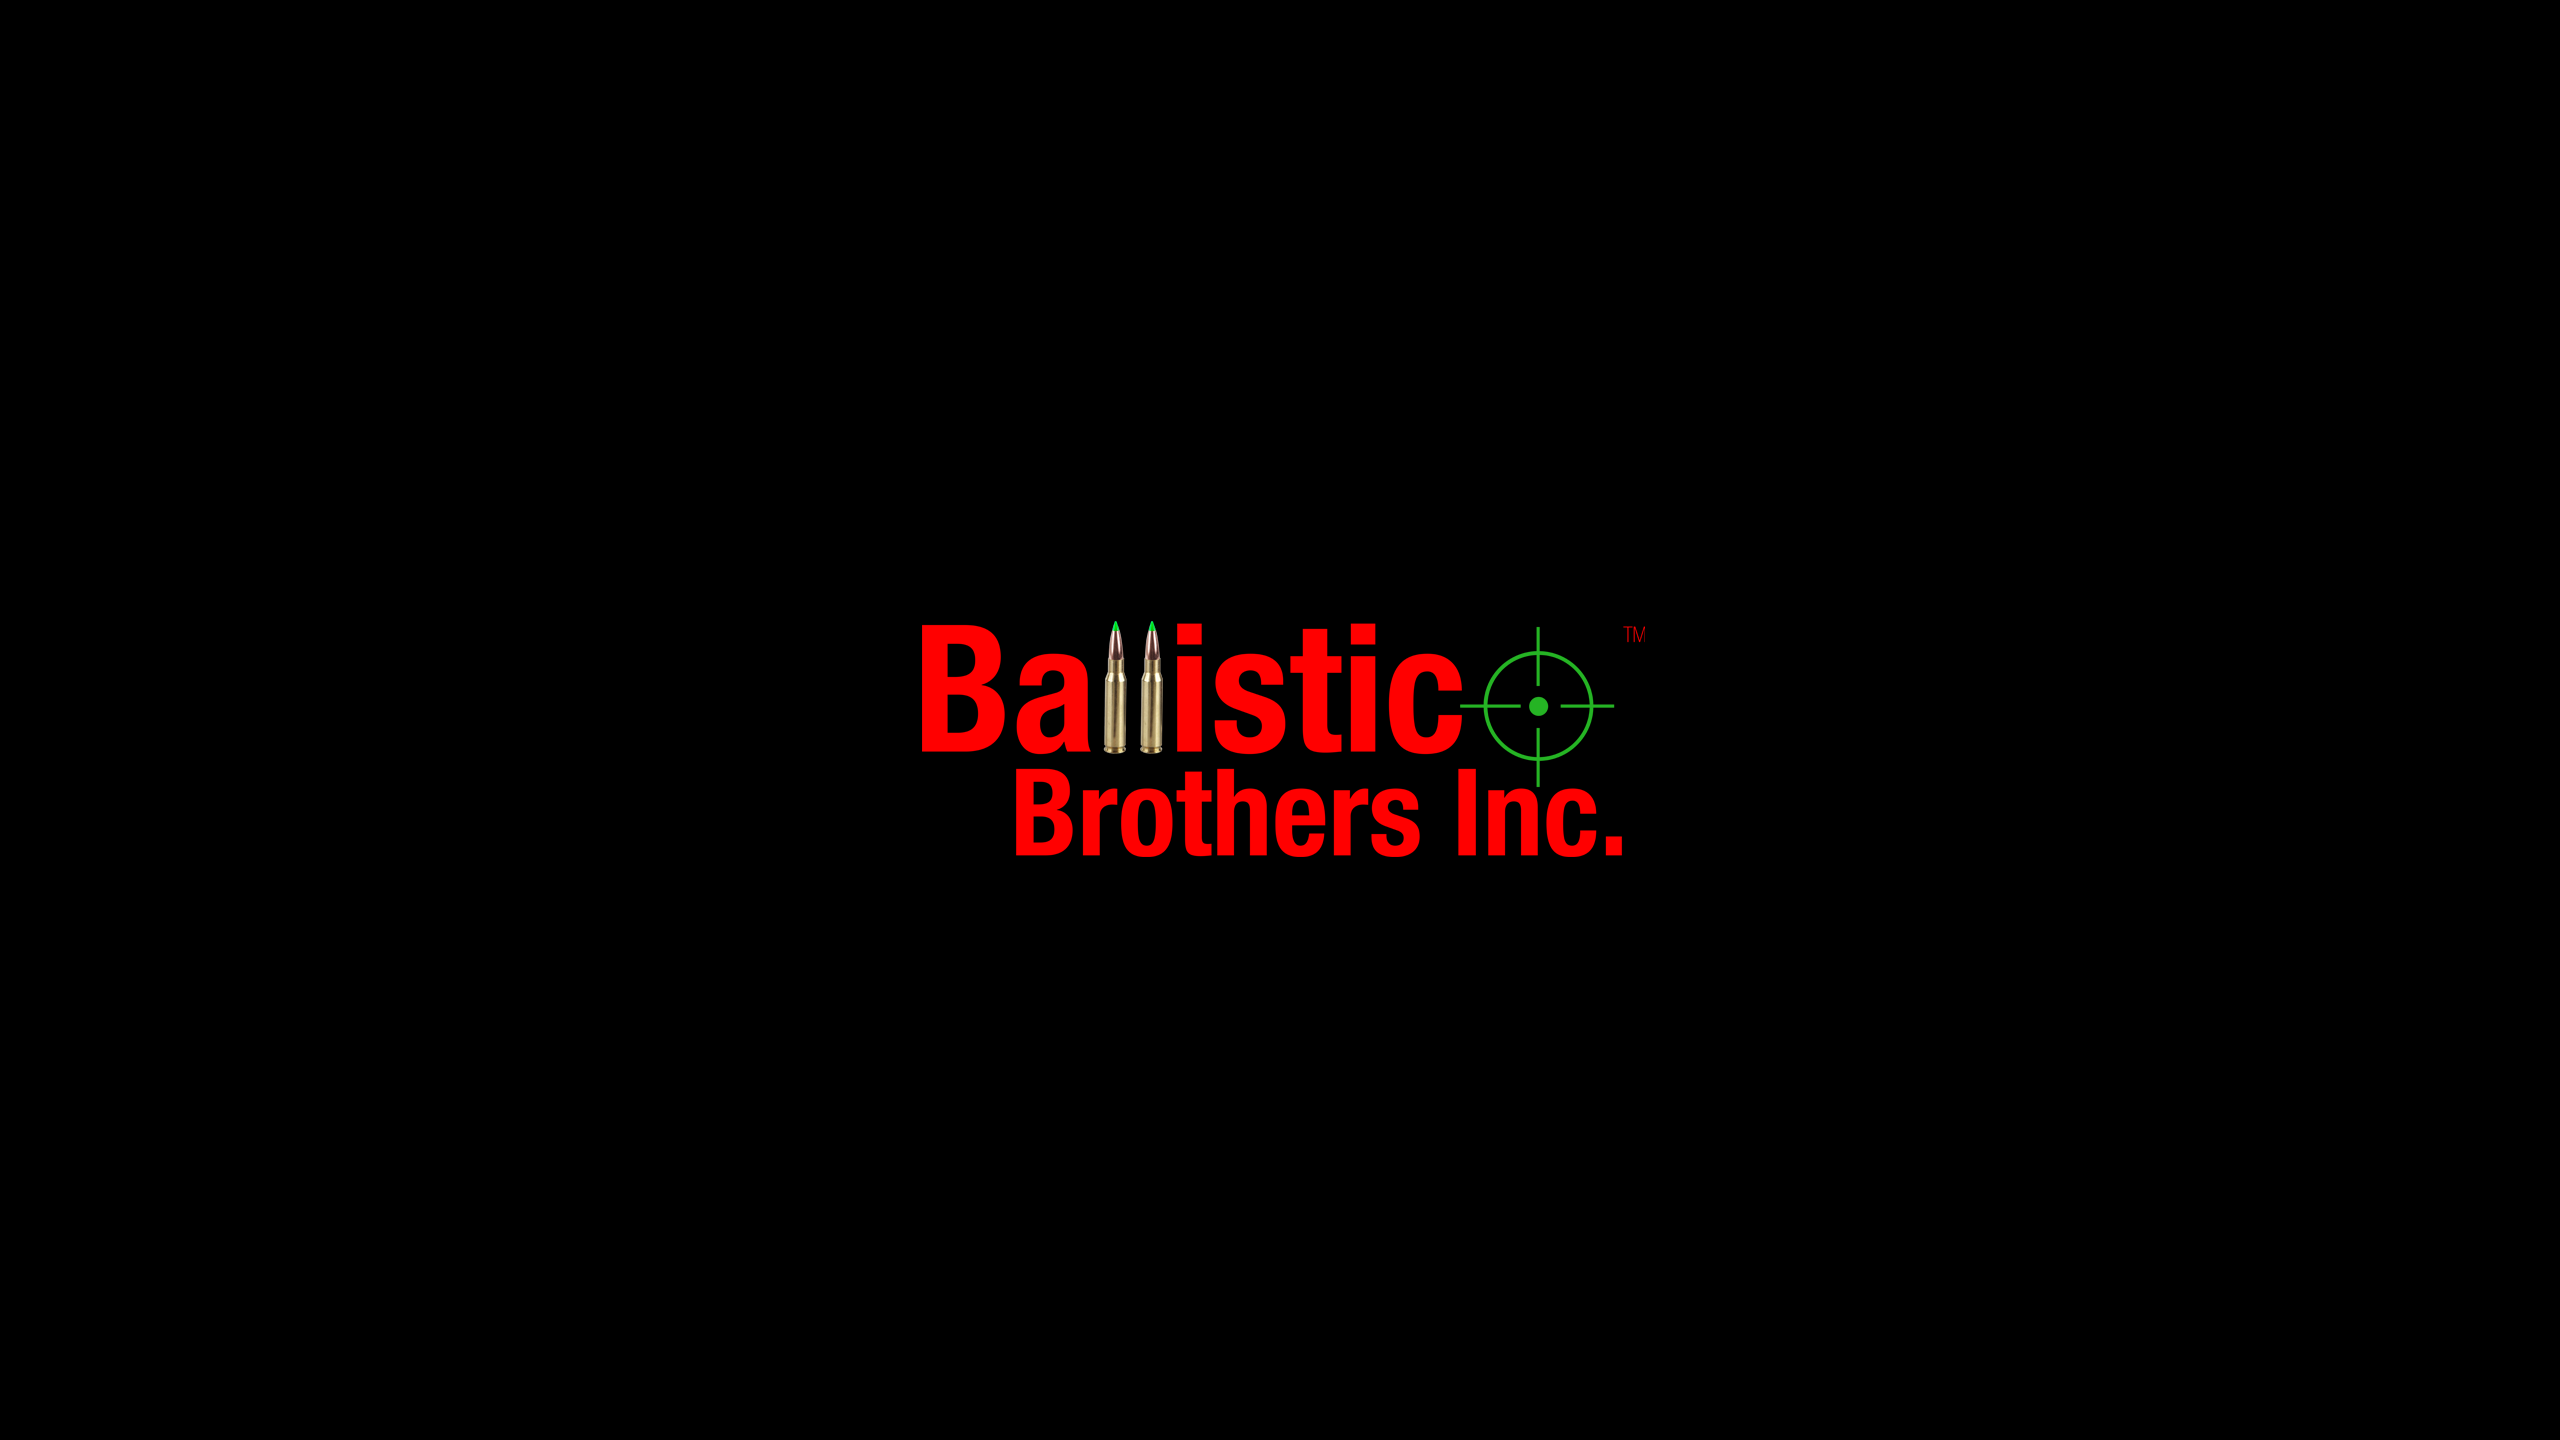 Ballistic Brothers Inc